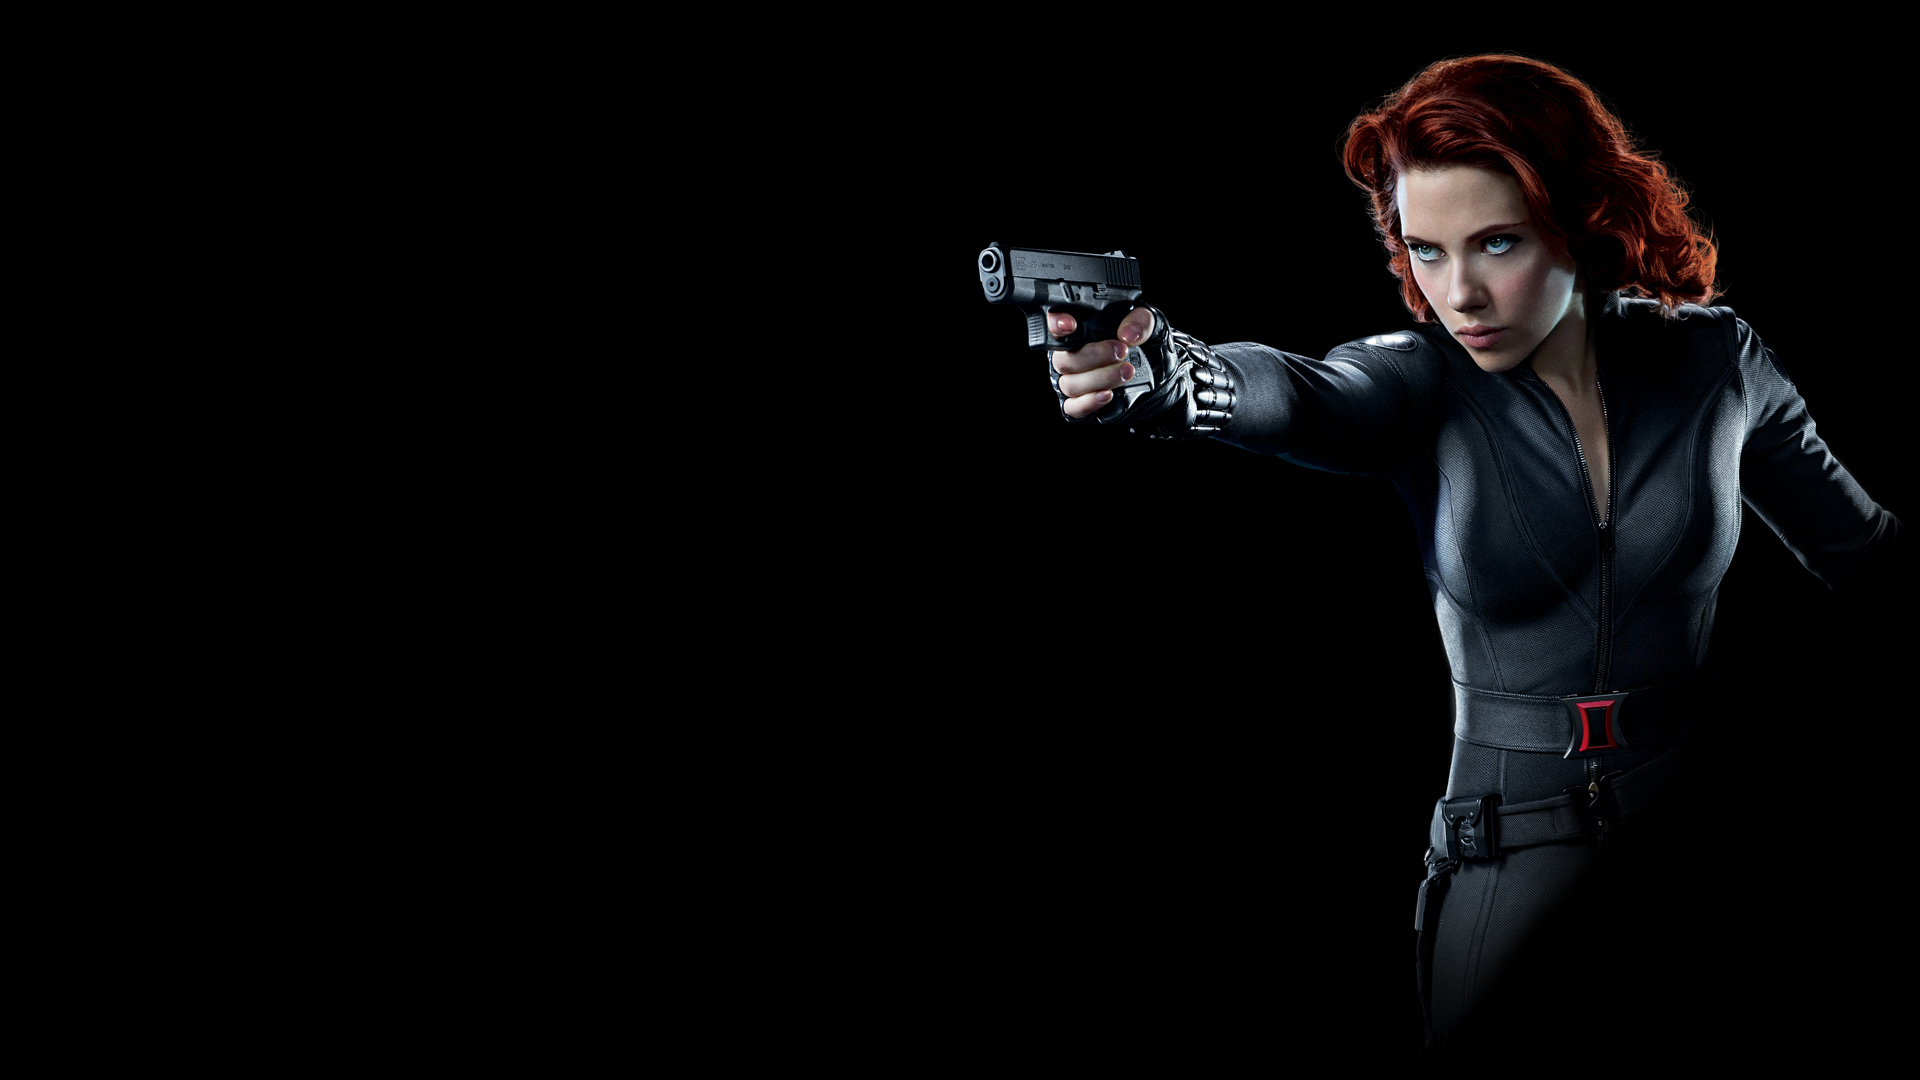 Avengers Scarlett Johansson Black Widow Natasha Romanoff Gun Wallpaper Resolution 1920x1080 Id 571294 Wallha Com